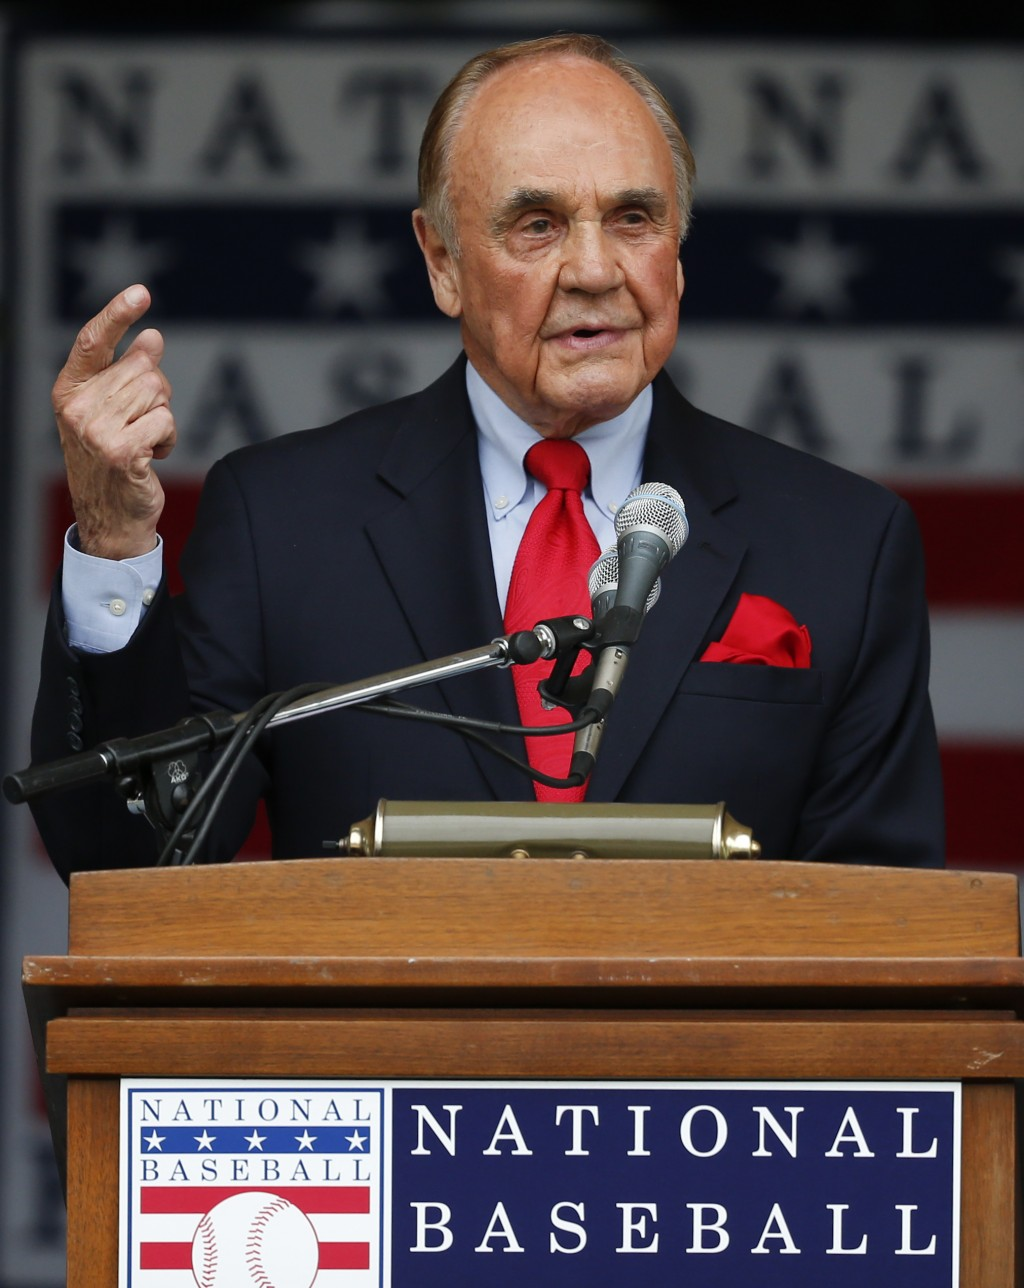 FILE - In this July 25, 2015, file photo, Dick Enberg speaks after receiving the Ford C. Frick Award during a ceremony at Doubleday Field in Coopersto...